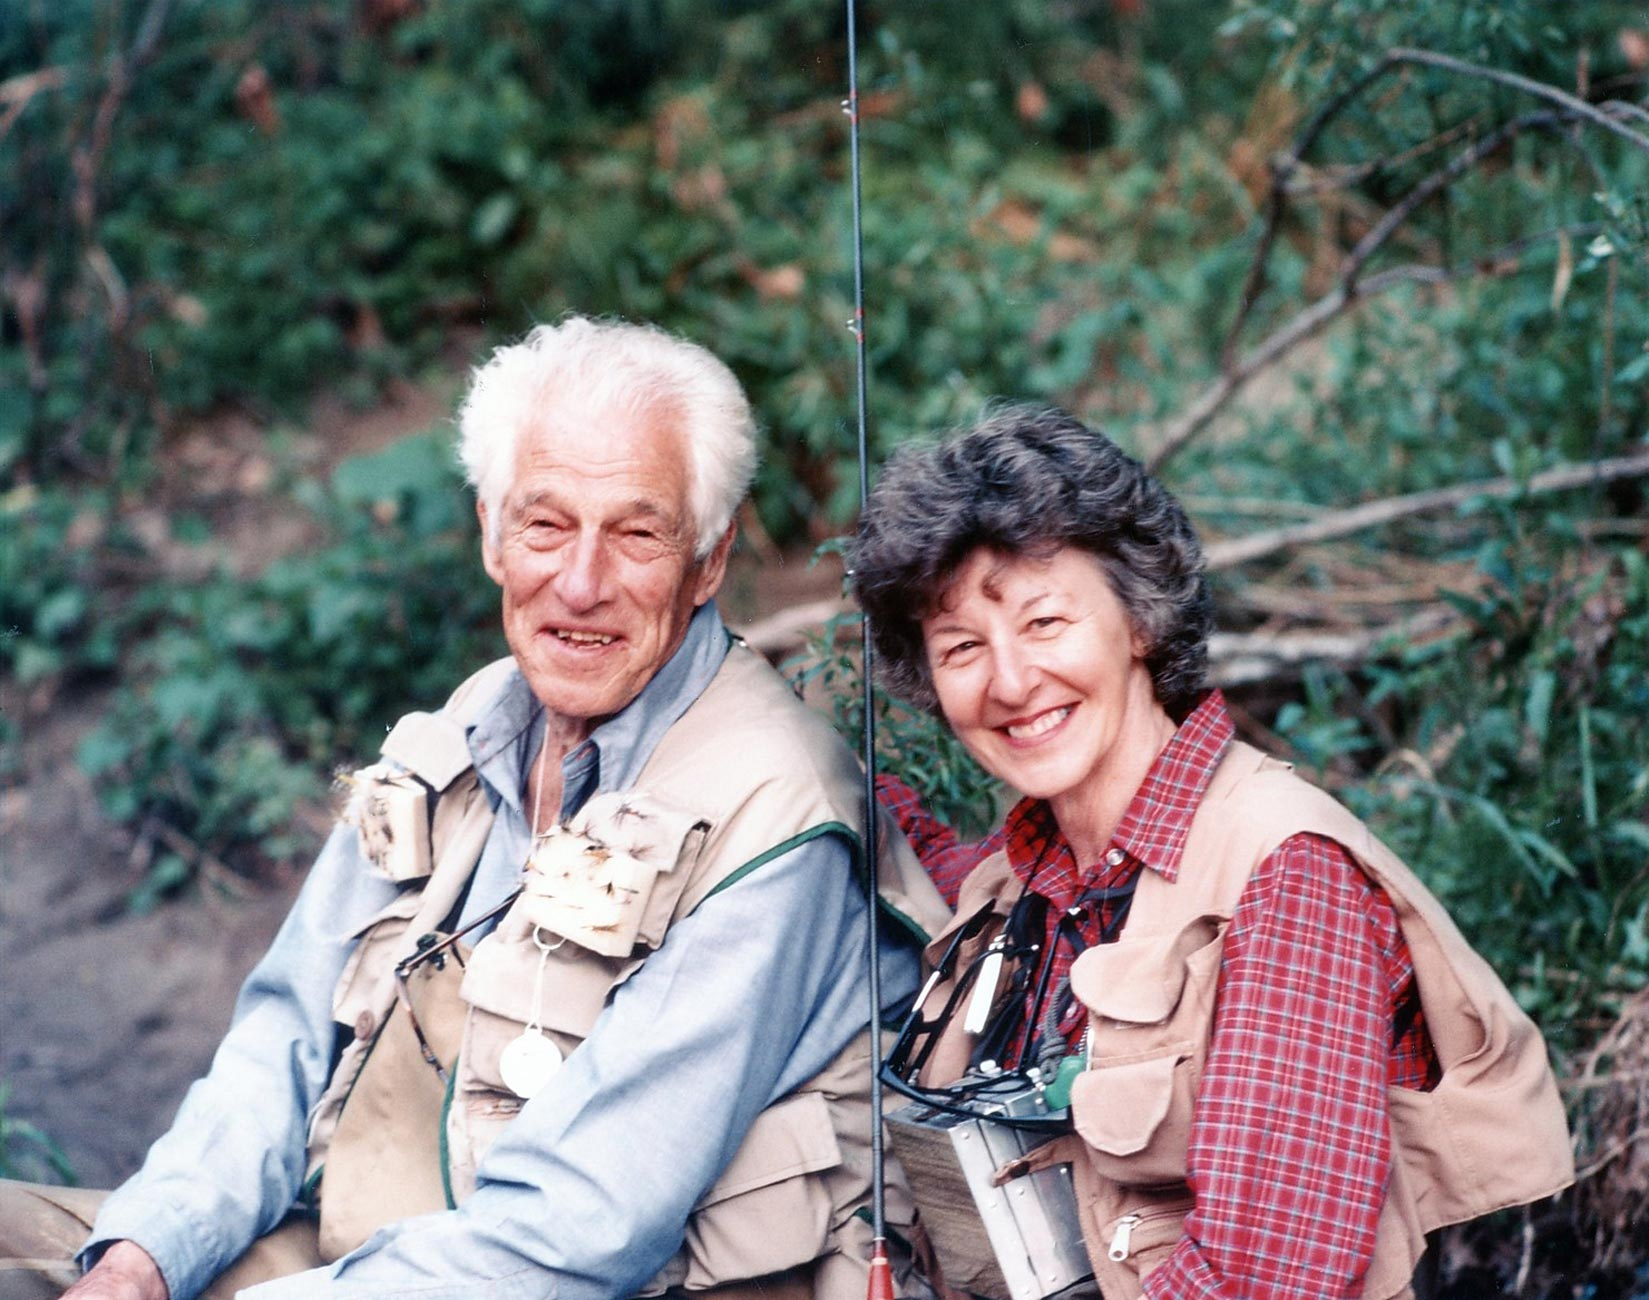 Joan and Lee Wulff Together - Adsum